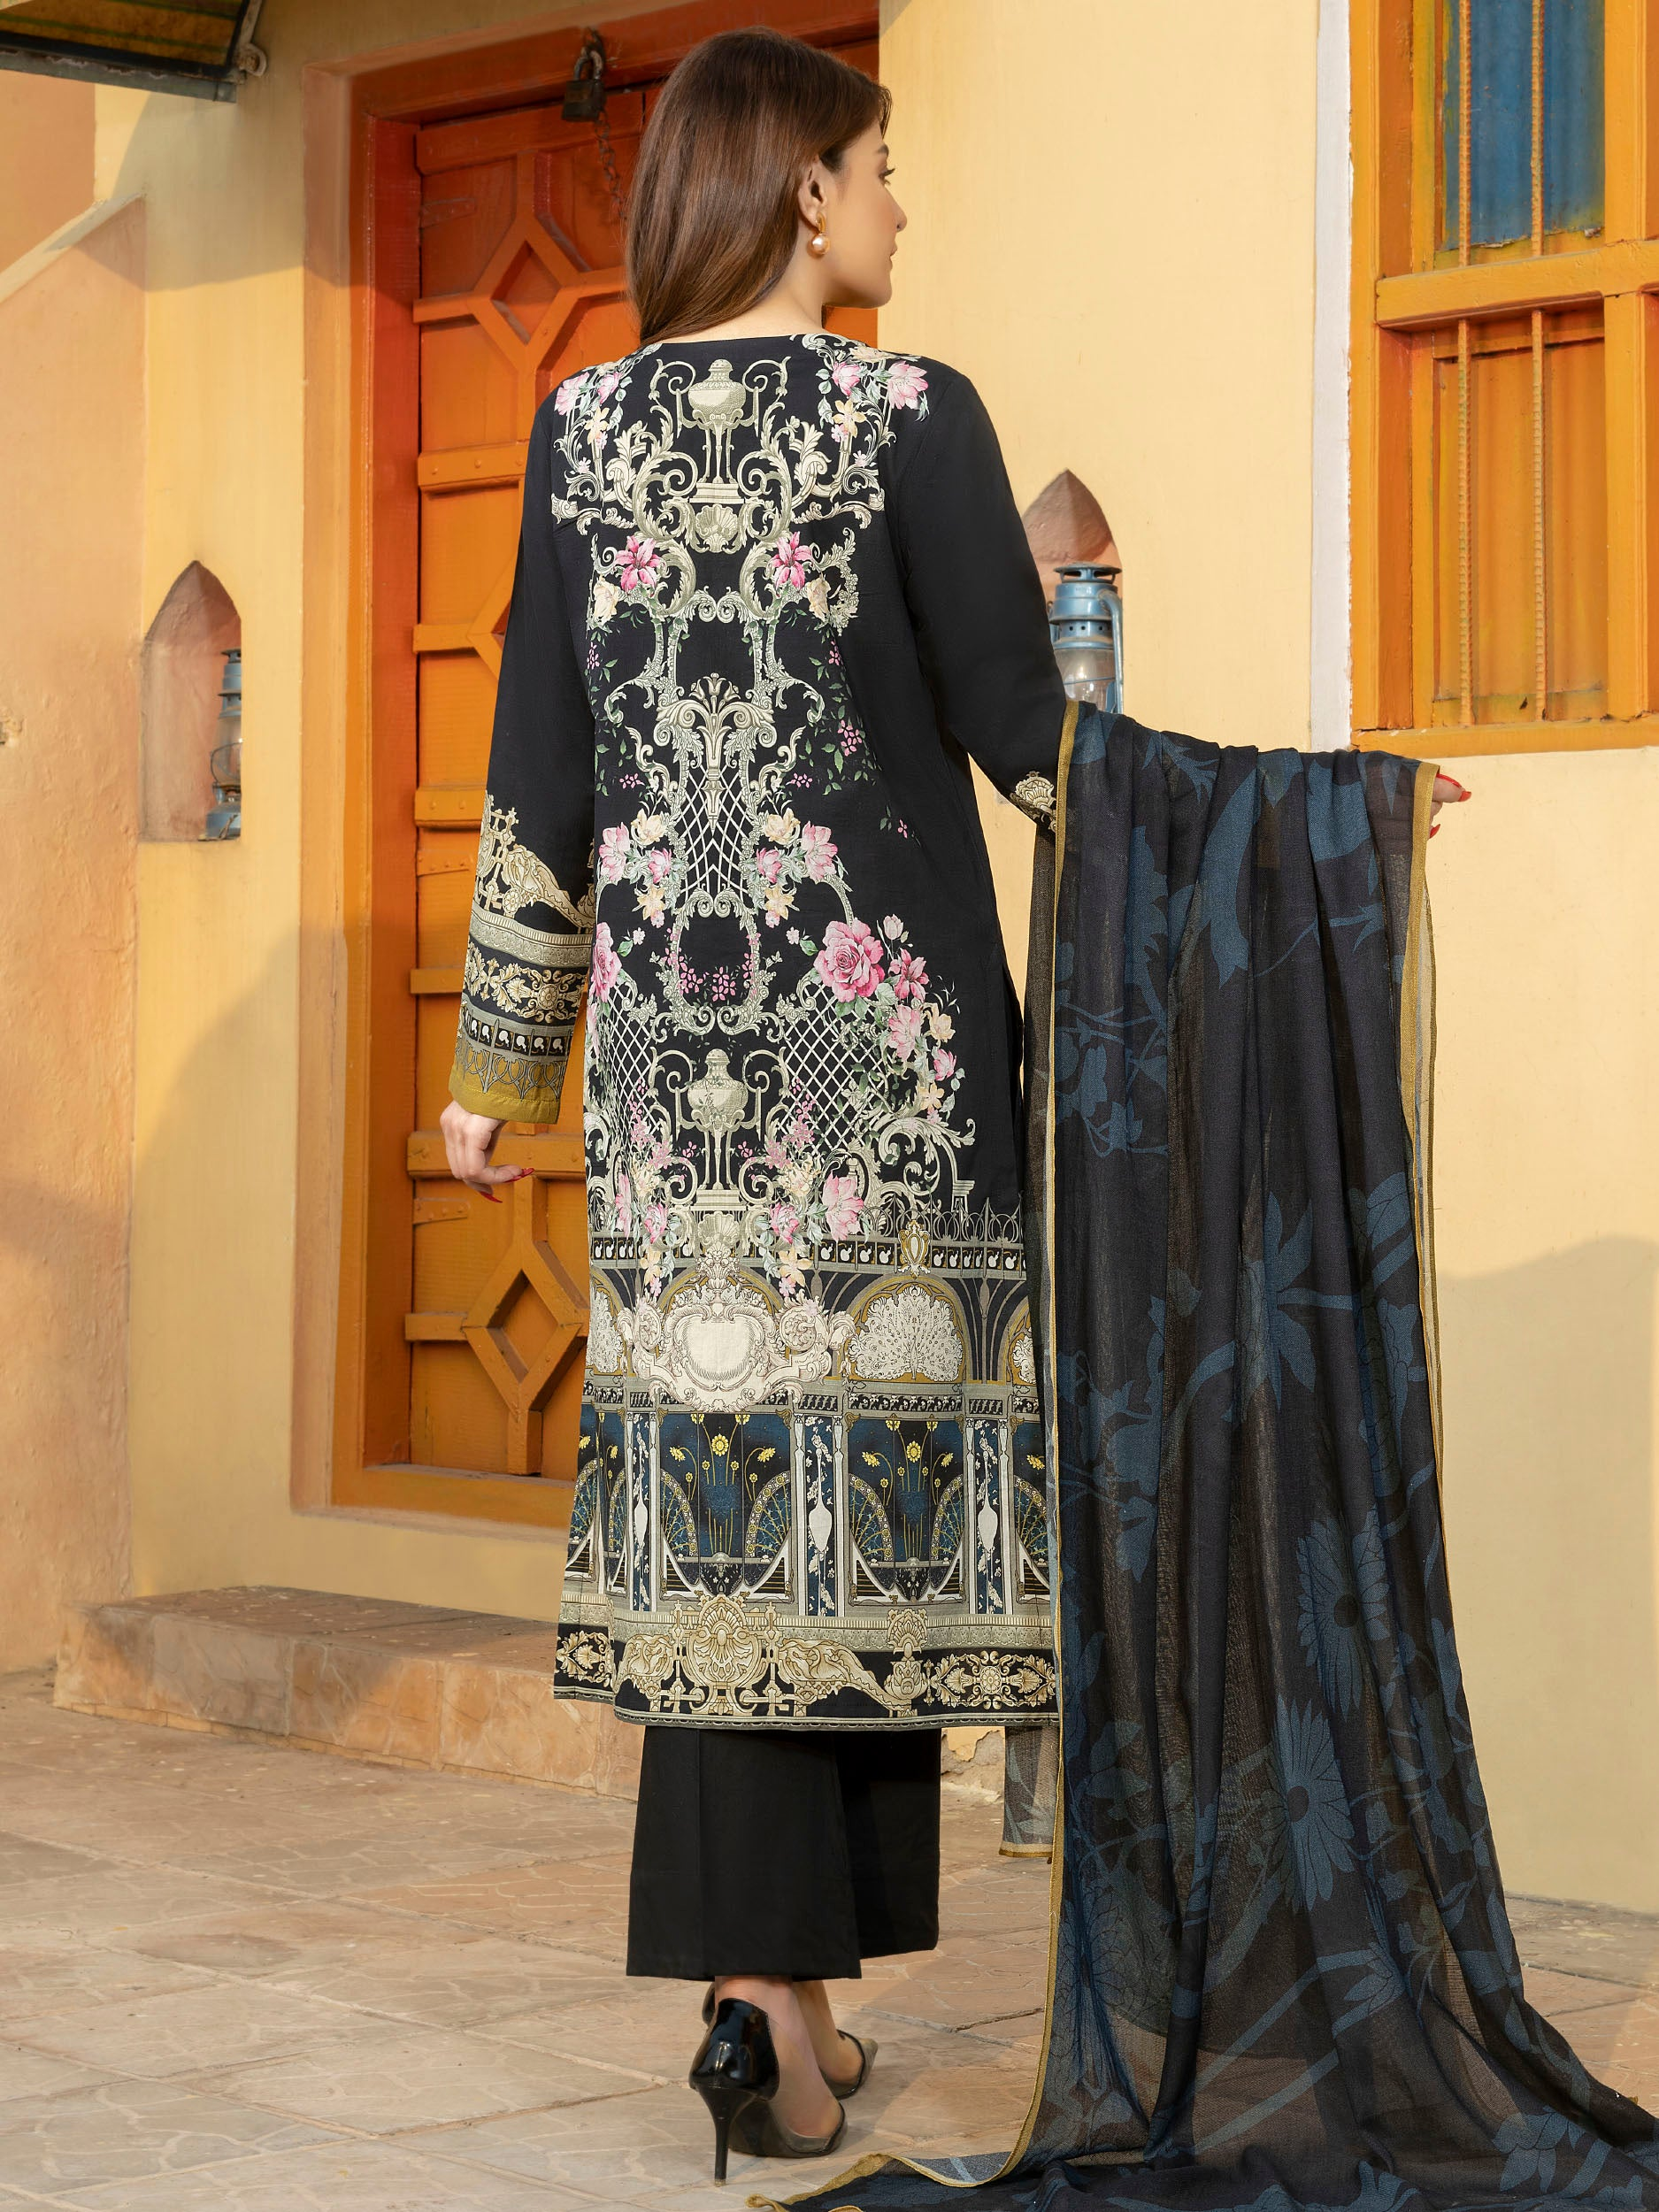 limelight winter collection volume 2 design of 2019, winter dresses in pakistan 2020, ladies dresses design of 2020, limelight winter collection design of 2020, limelight winter collection volume 2 design of 2020